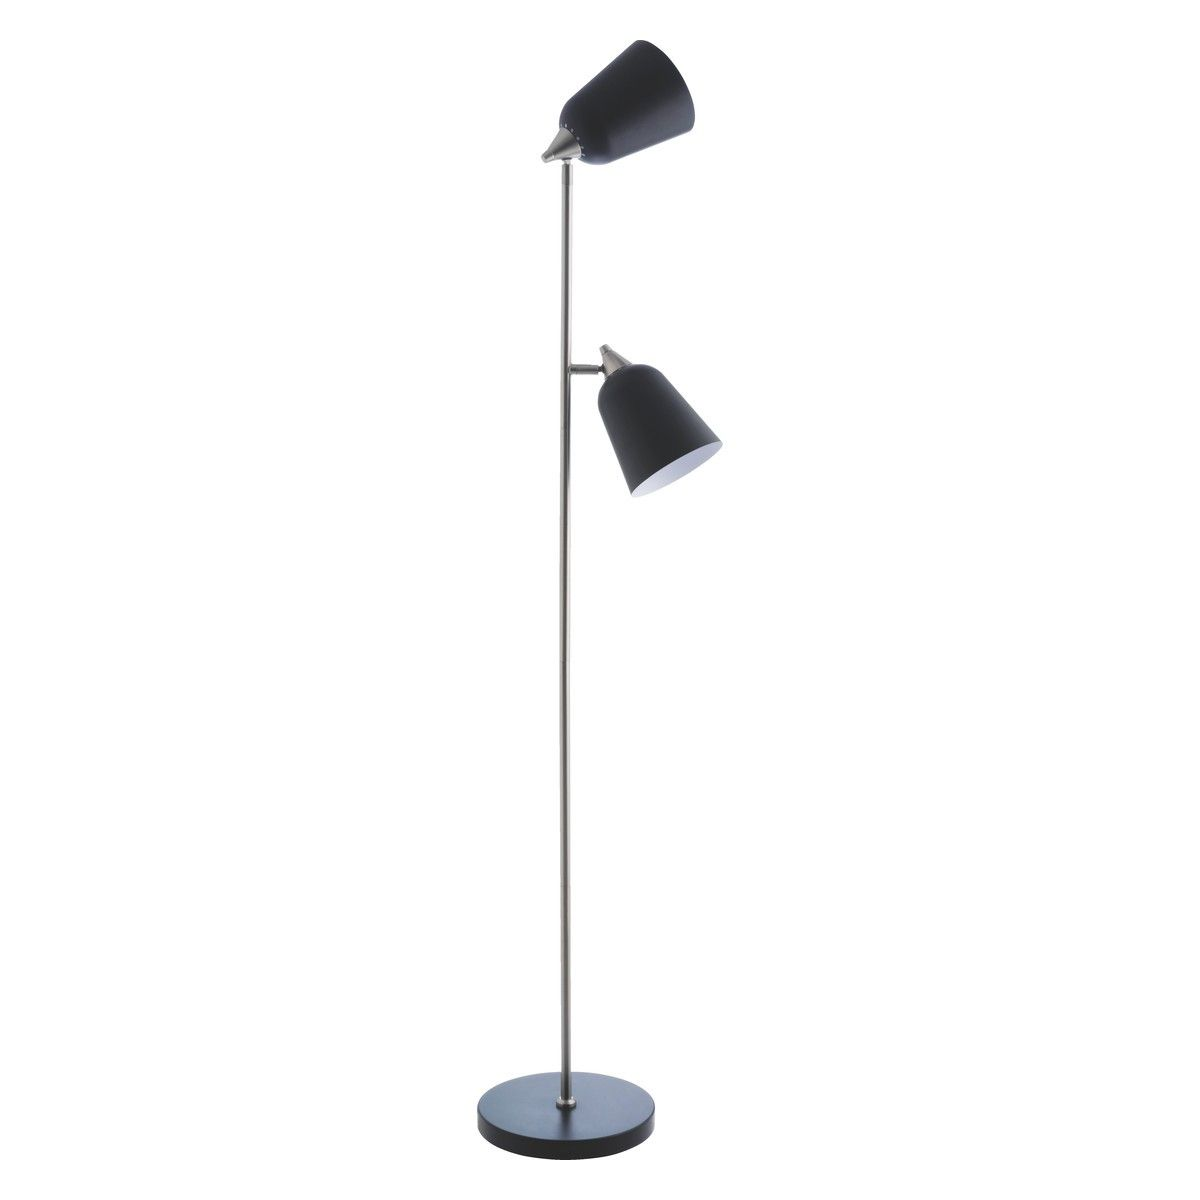 Double Black Metal Double Head Floor Lamp Buy Now At Habitat Uk Lamp Floor Lamp Lamp Light